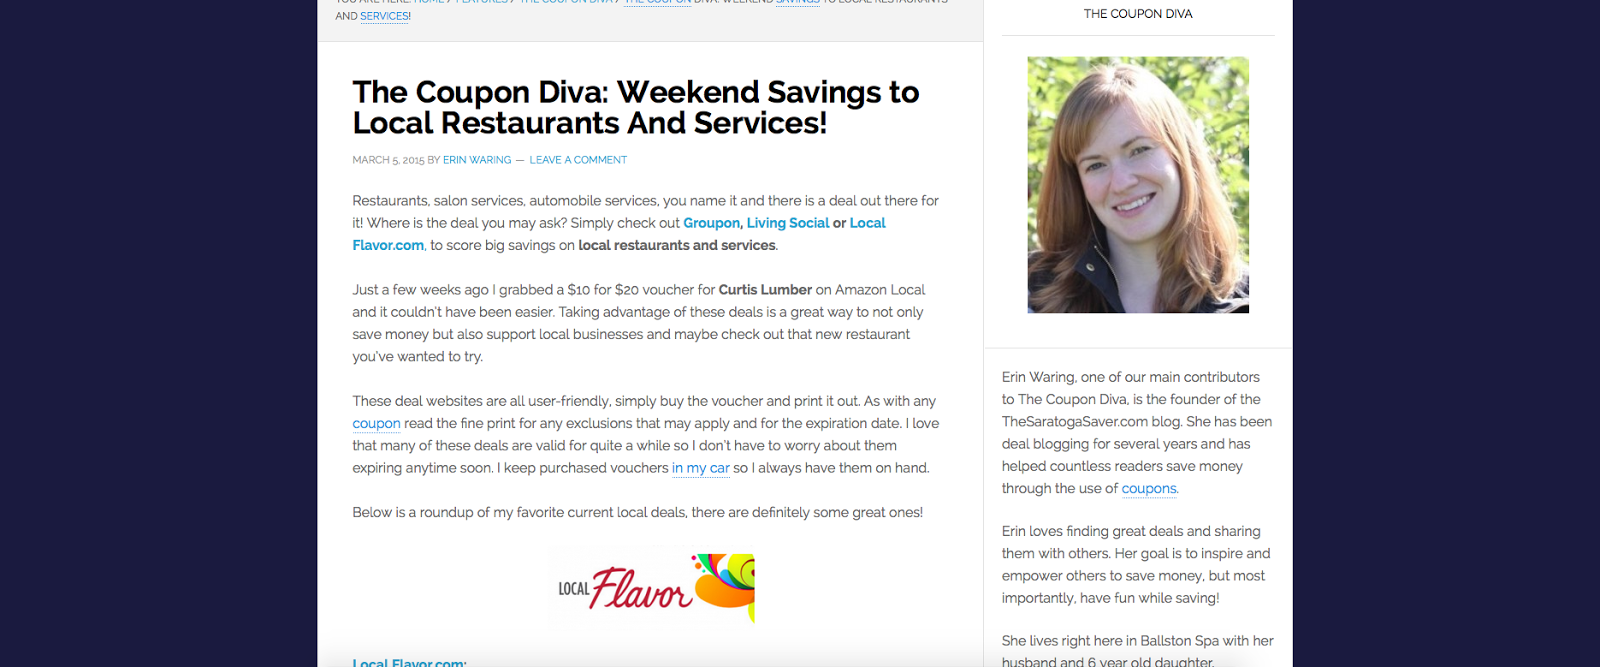 http://theballstonjournal.com/2015/03/05/the-coupon-diva-weekend-savings-to-local-restaurants-and-services/